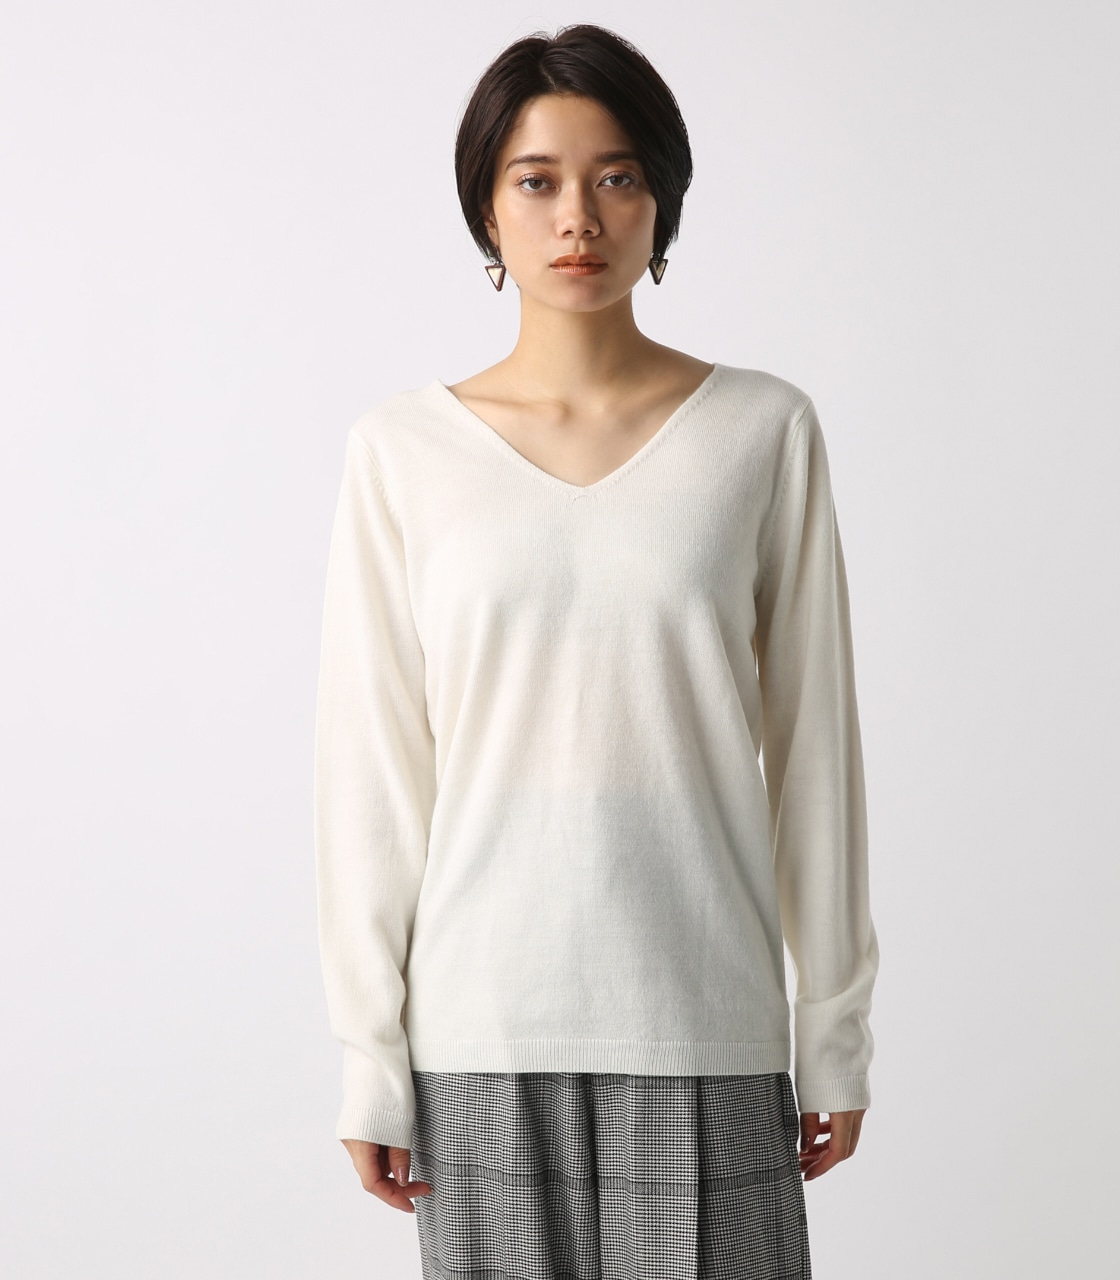 【AZUL BY MOUSSY】ウォッシャブルソフトタッチVネック長袖プルオーバー [MOOK掲載]  97011 詳細画像 O/WHT 5